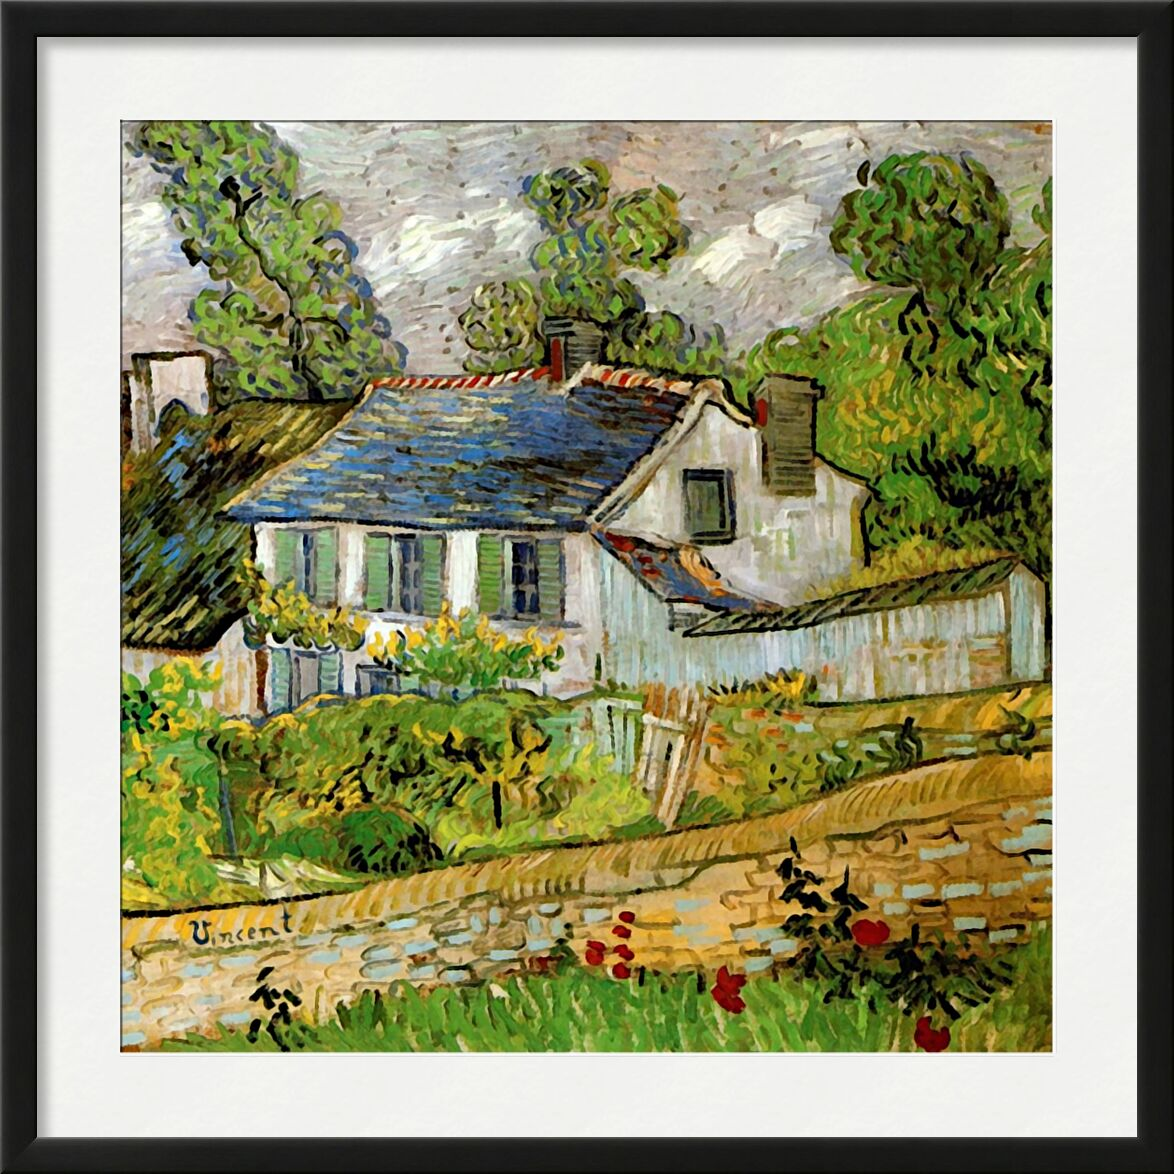 House in Auvers - Van Gogh from AUX BEAUX-ARTS, Prodi Art, Van gogh, painting, House, France, over